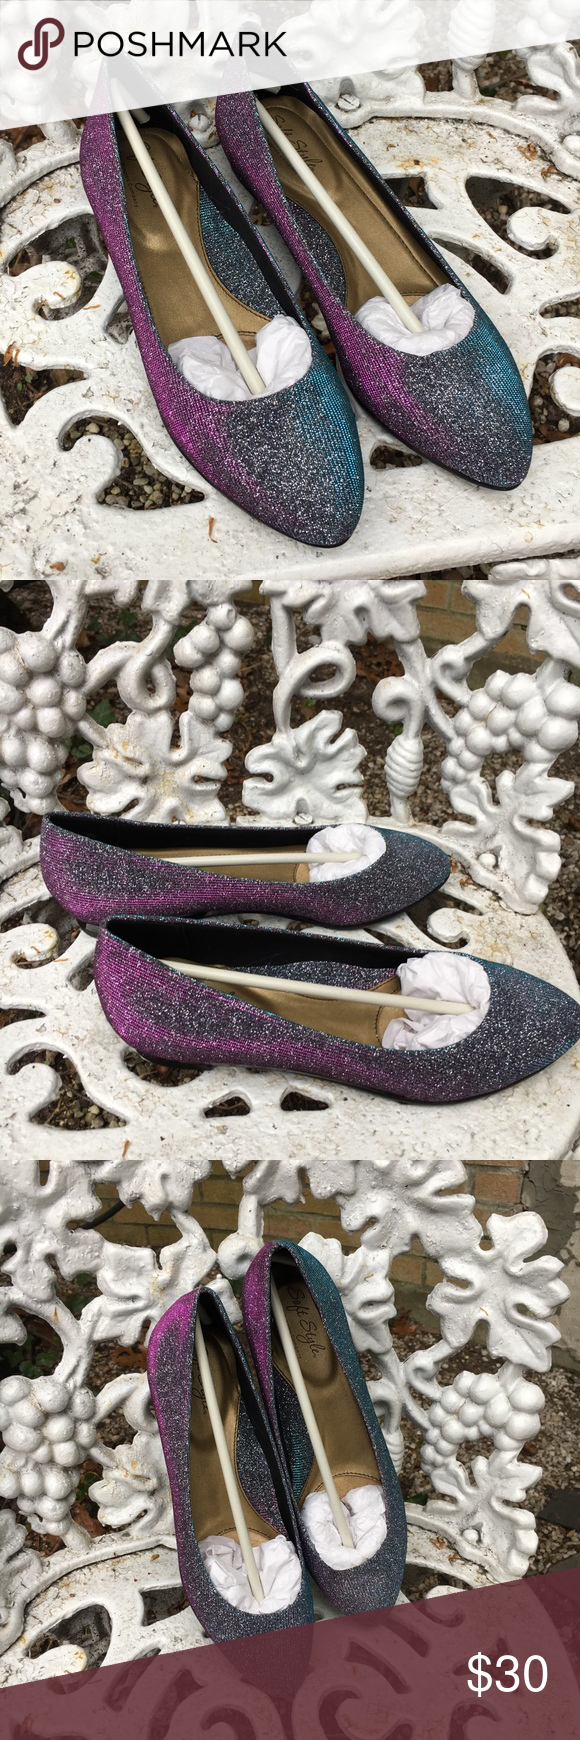 Vintage ombré hush puppies flats nwt puppy shoes hush puppies and